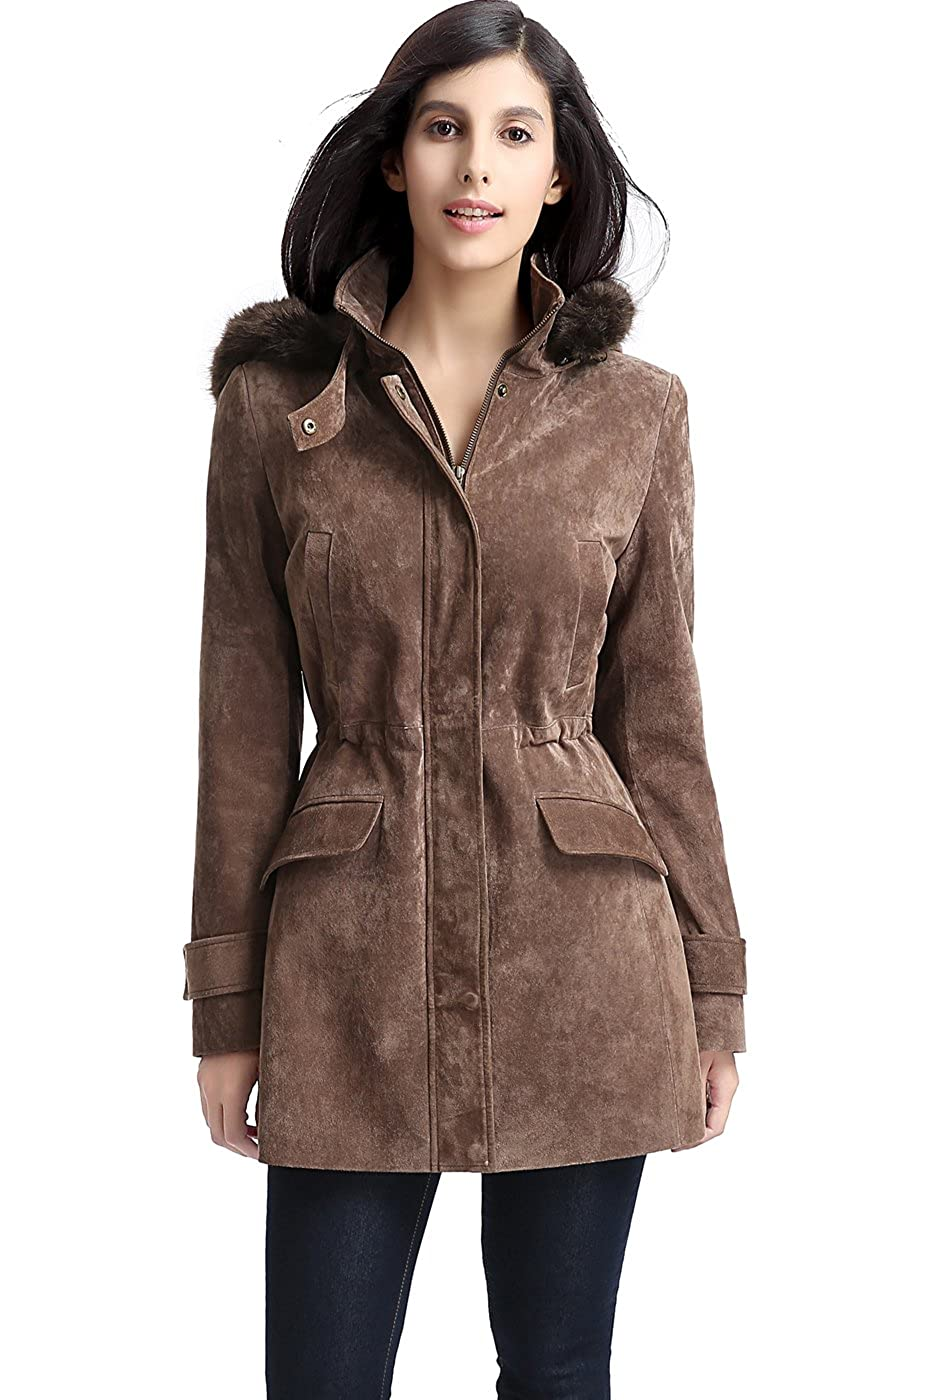 b177bffe8 BGSD Women's Chloe Suede Leather Parka Coat (Regular and Plus Size and  Short)